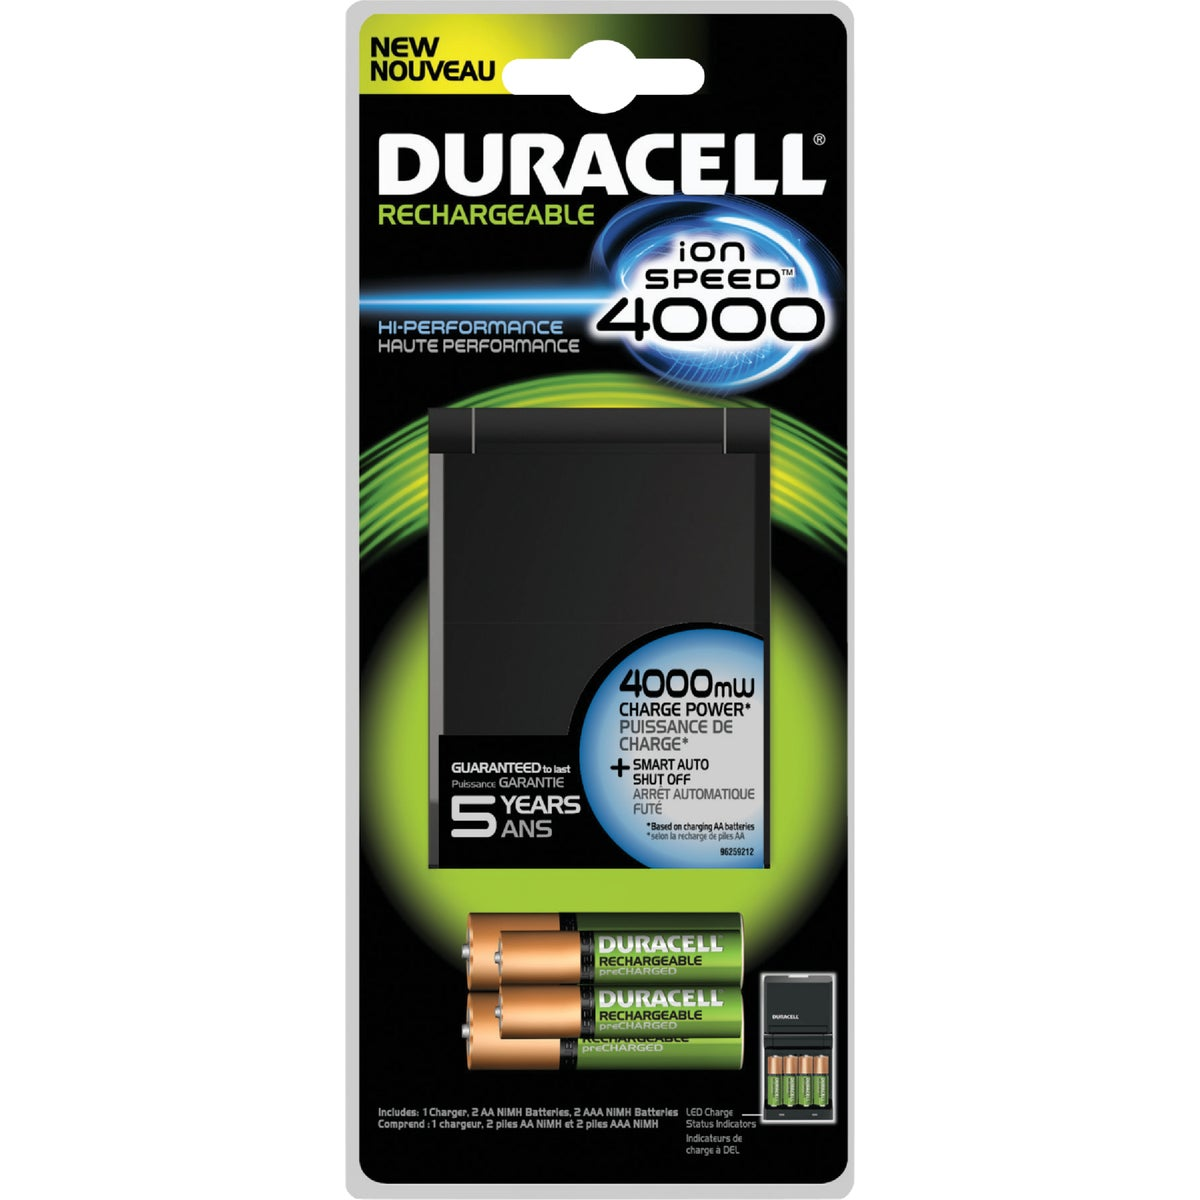 DURACELL ION SPEED 4000 - 66105 by P & G  Duracell